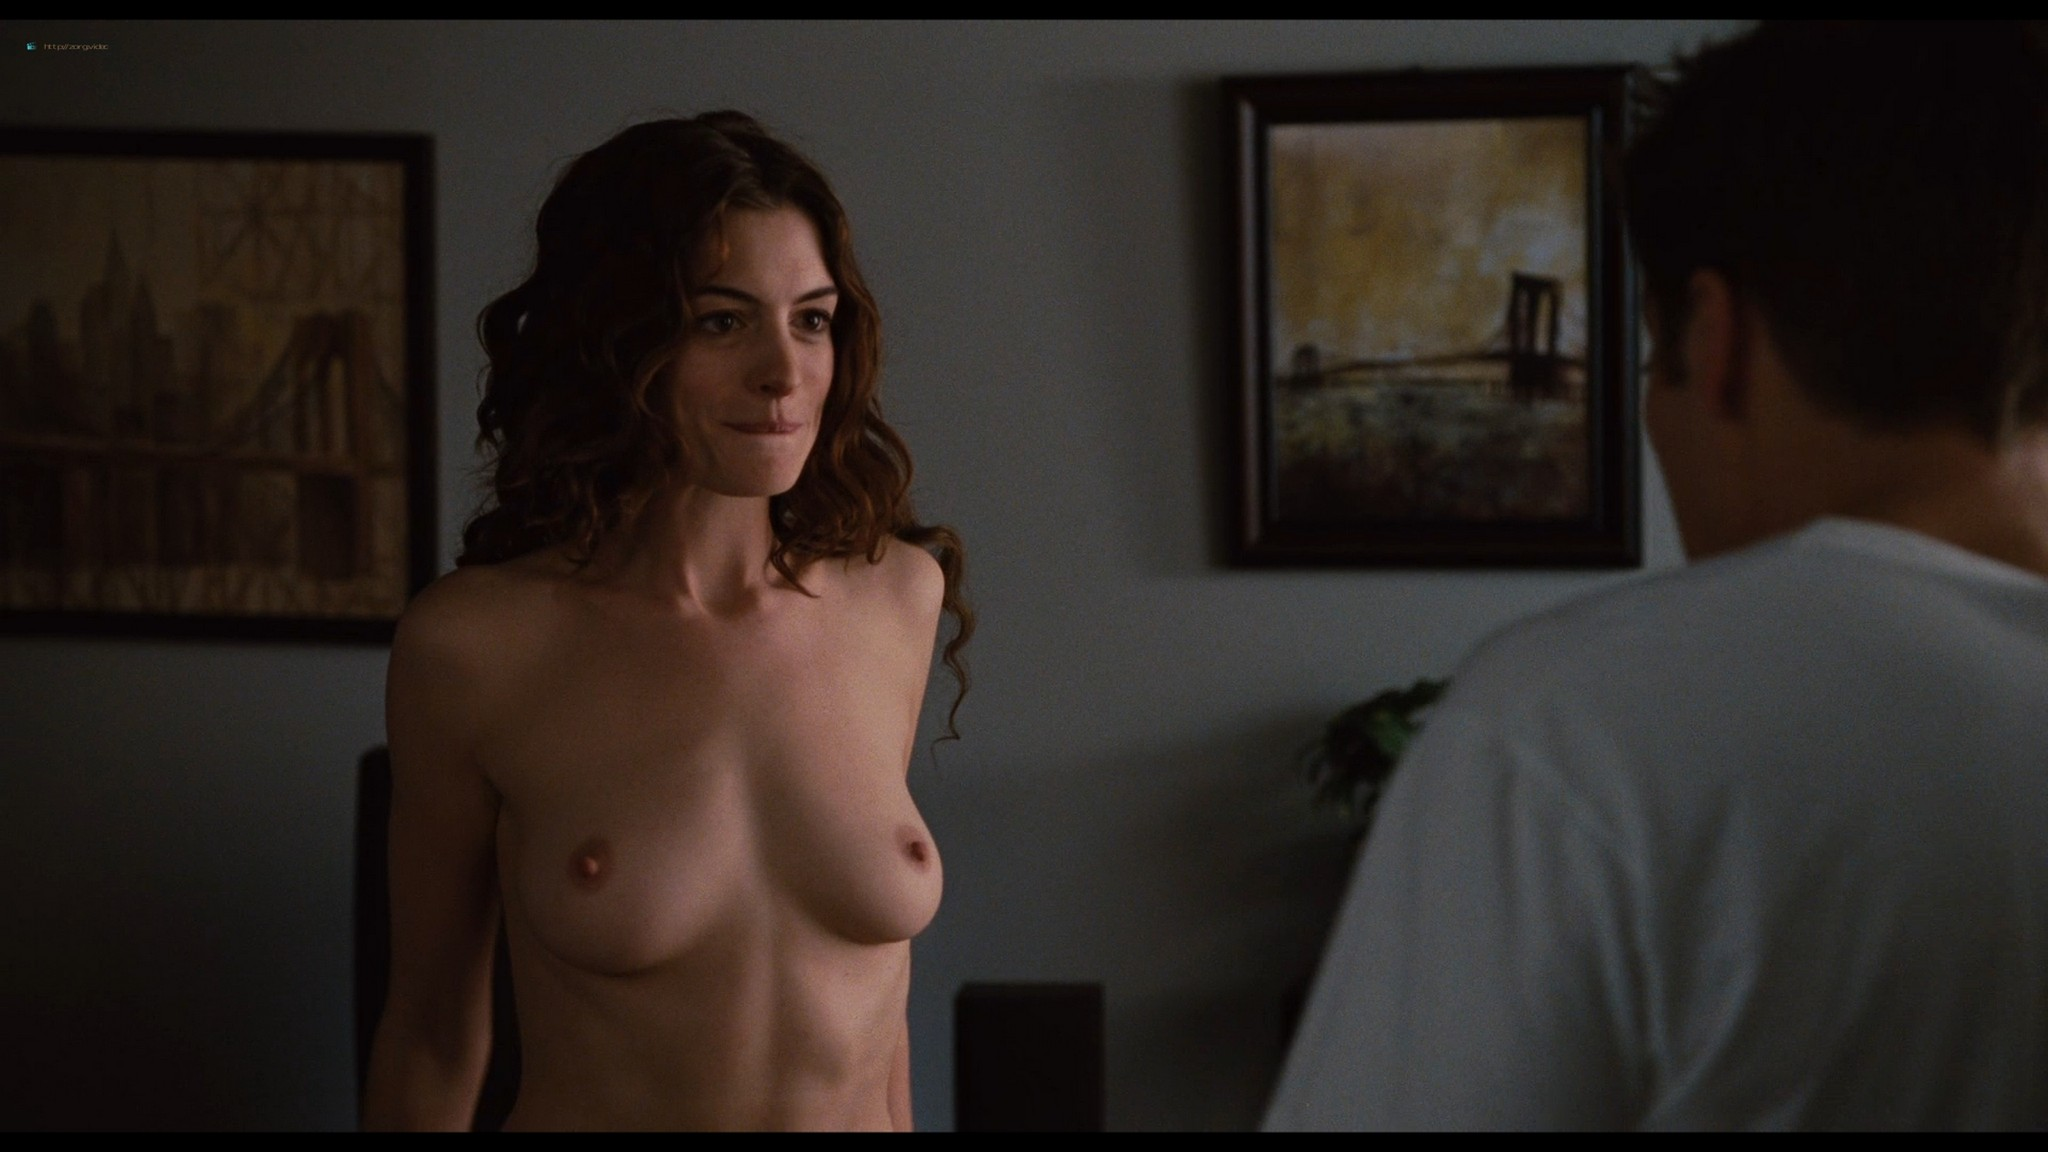 Anne Hathaway nude sex, Katheryn Winnick hot - Love and other drugs (2010) HD 1080p BluRay (15)